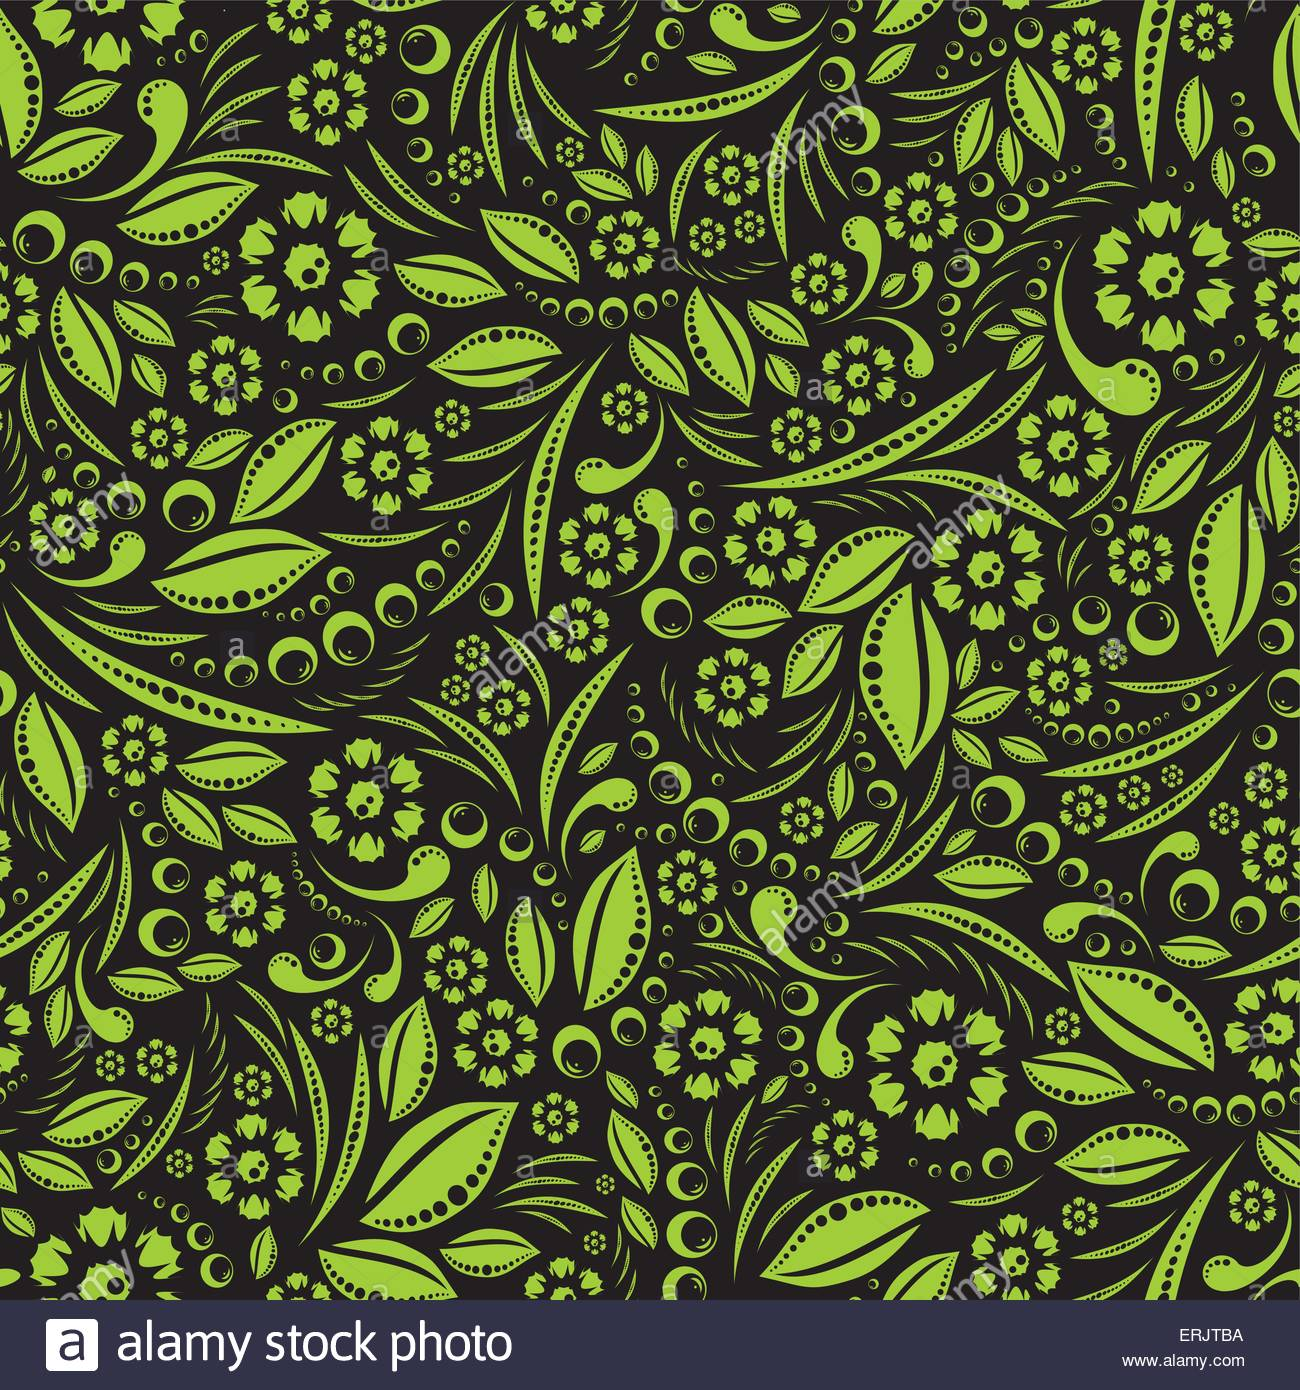 Seamless vector wallpaper Green vegetation repeating pattern on a 1300x1390